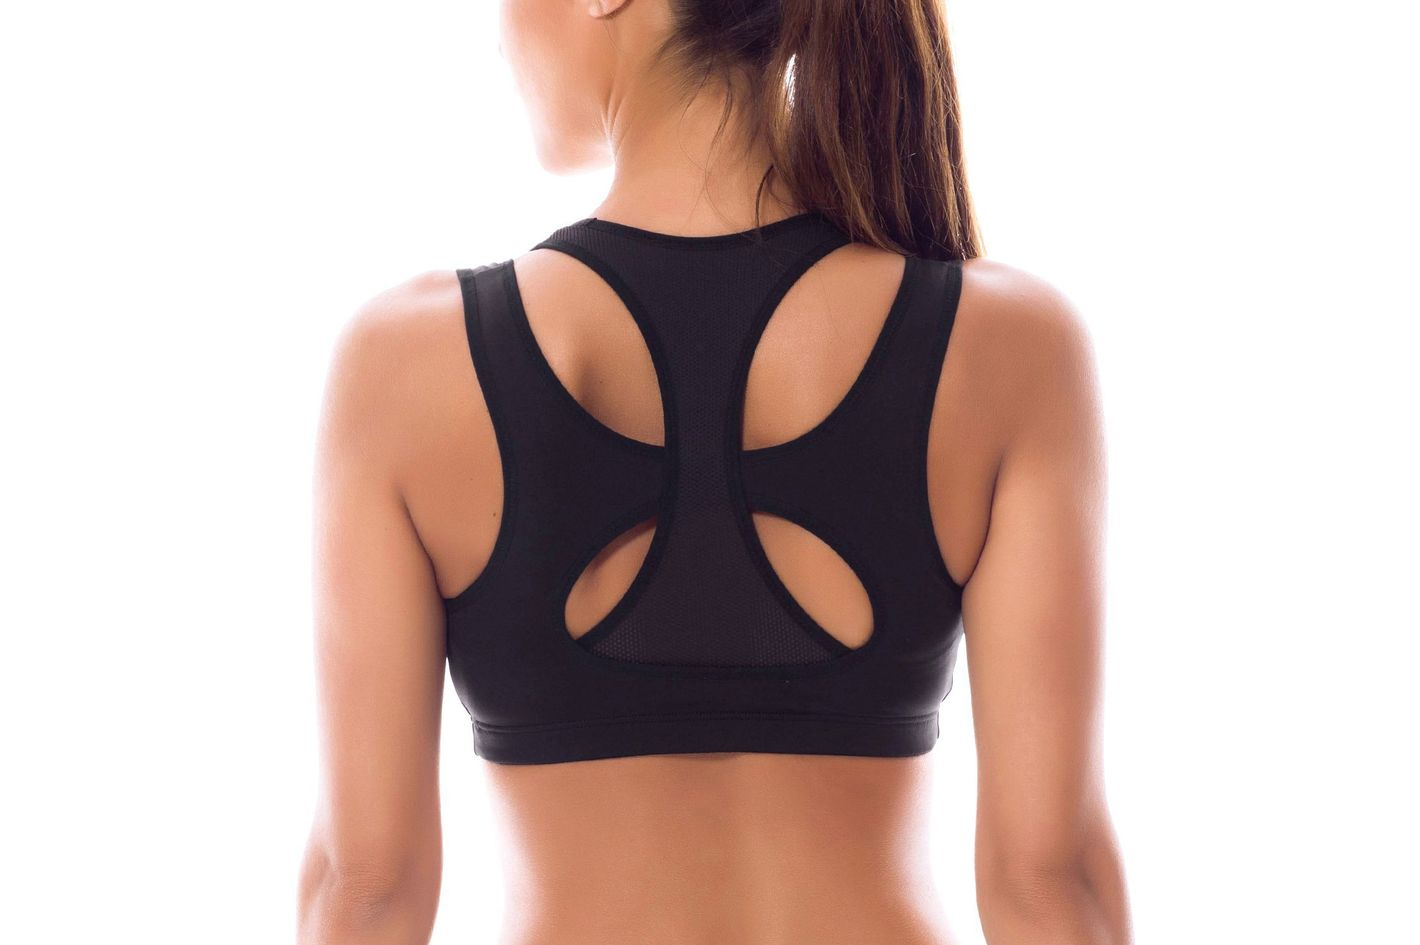 d8c436daba SYROKAN Women s High Impact Support Wirefree Workout Racerback Sports Bra  Top